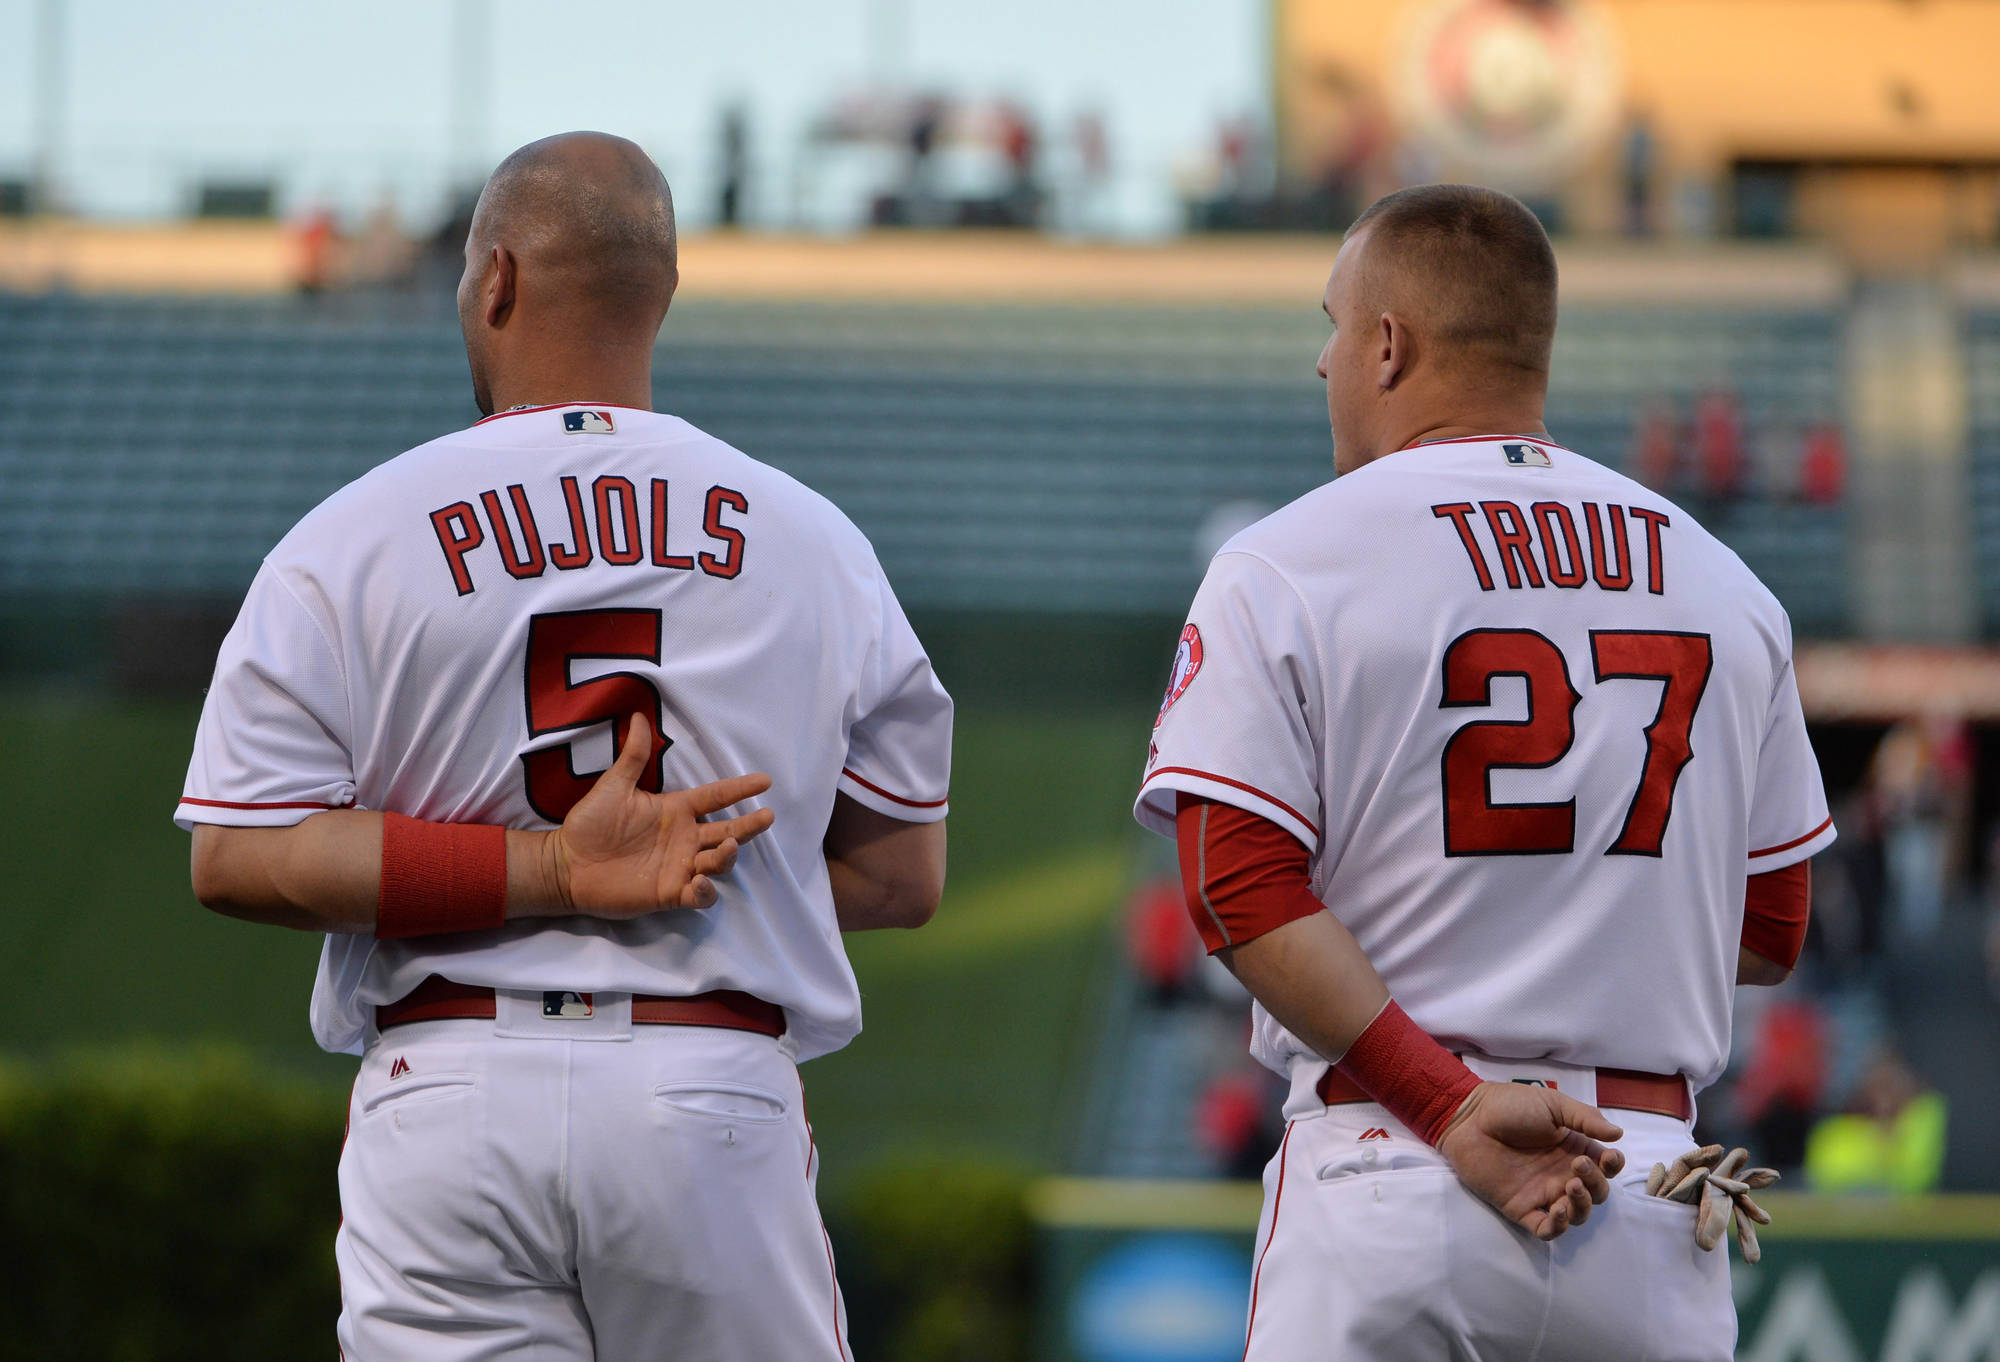 Pujols The Great; 7x MLB MVP re-writing history